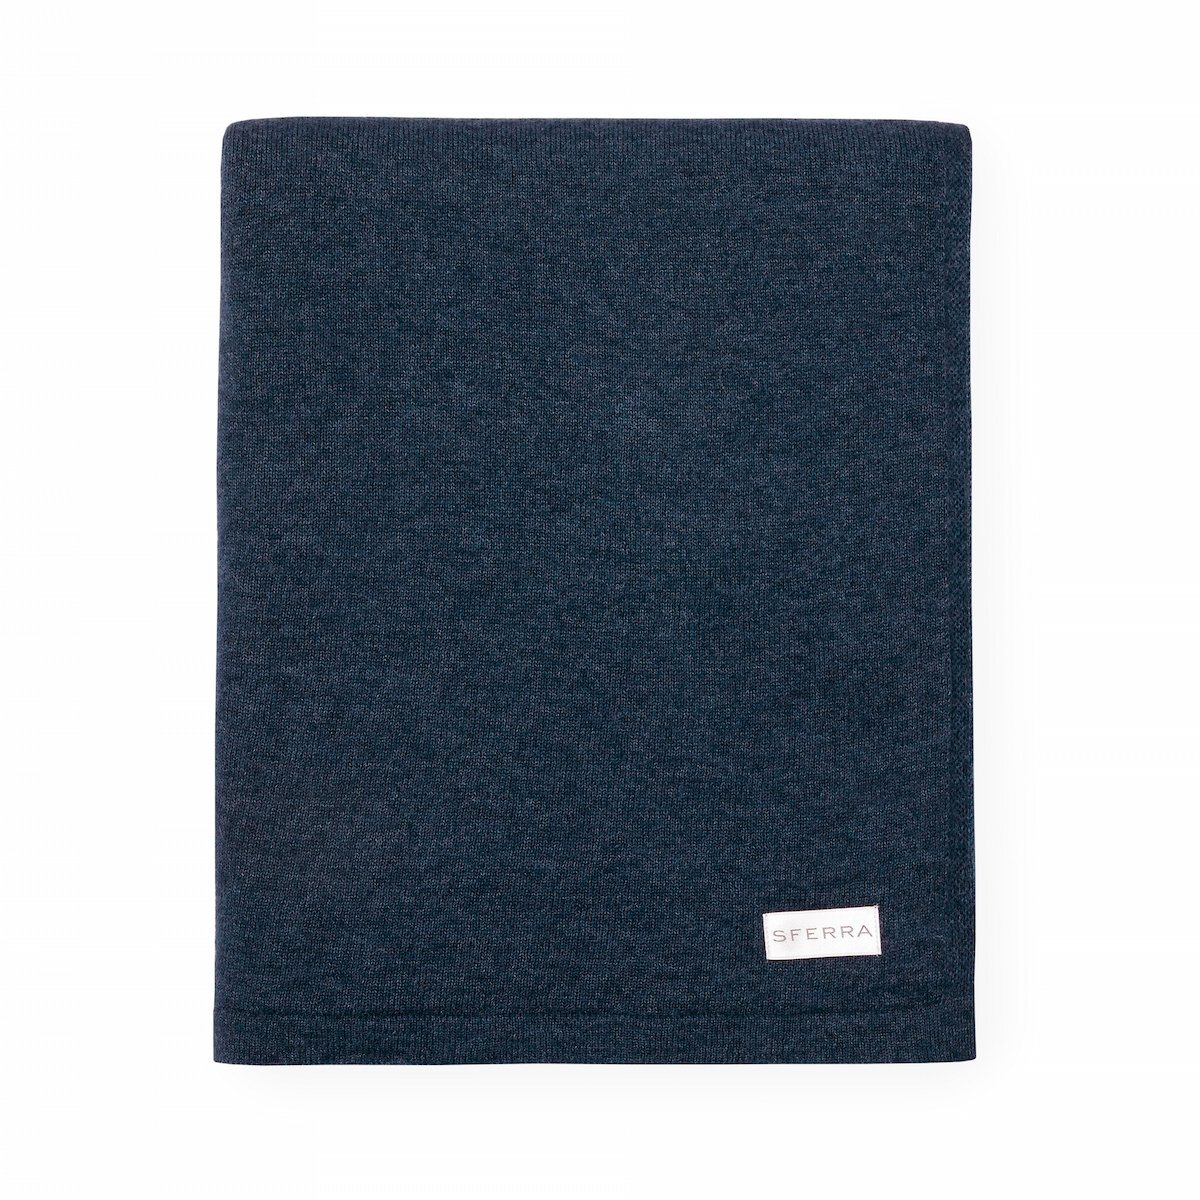 Fig Linens - Sferra Tiago Indigo Throw